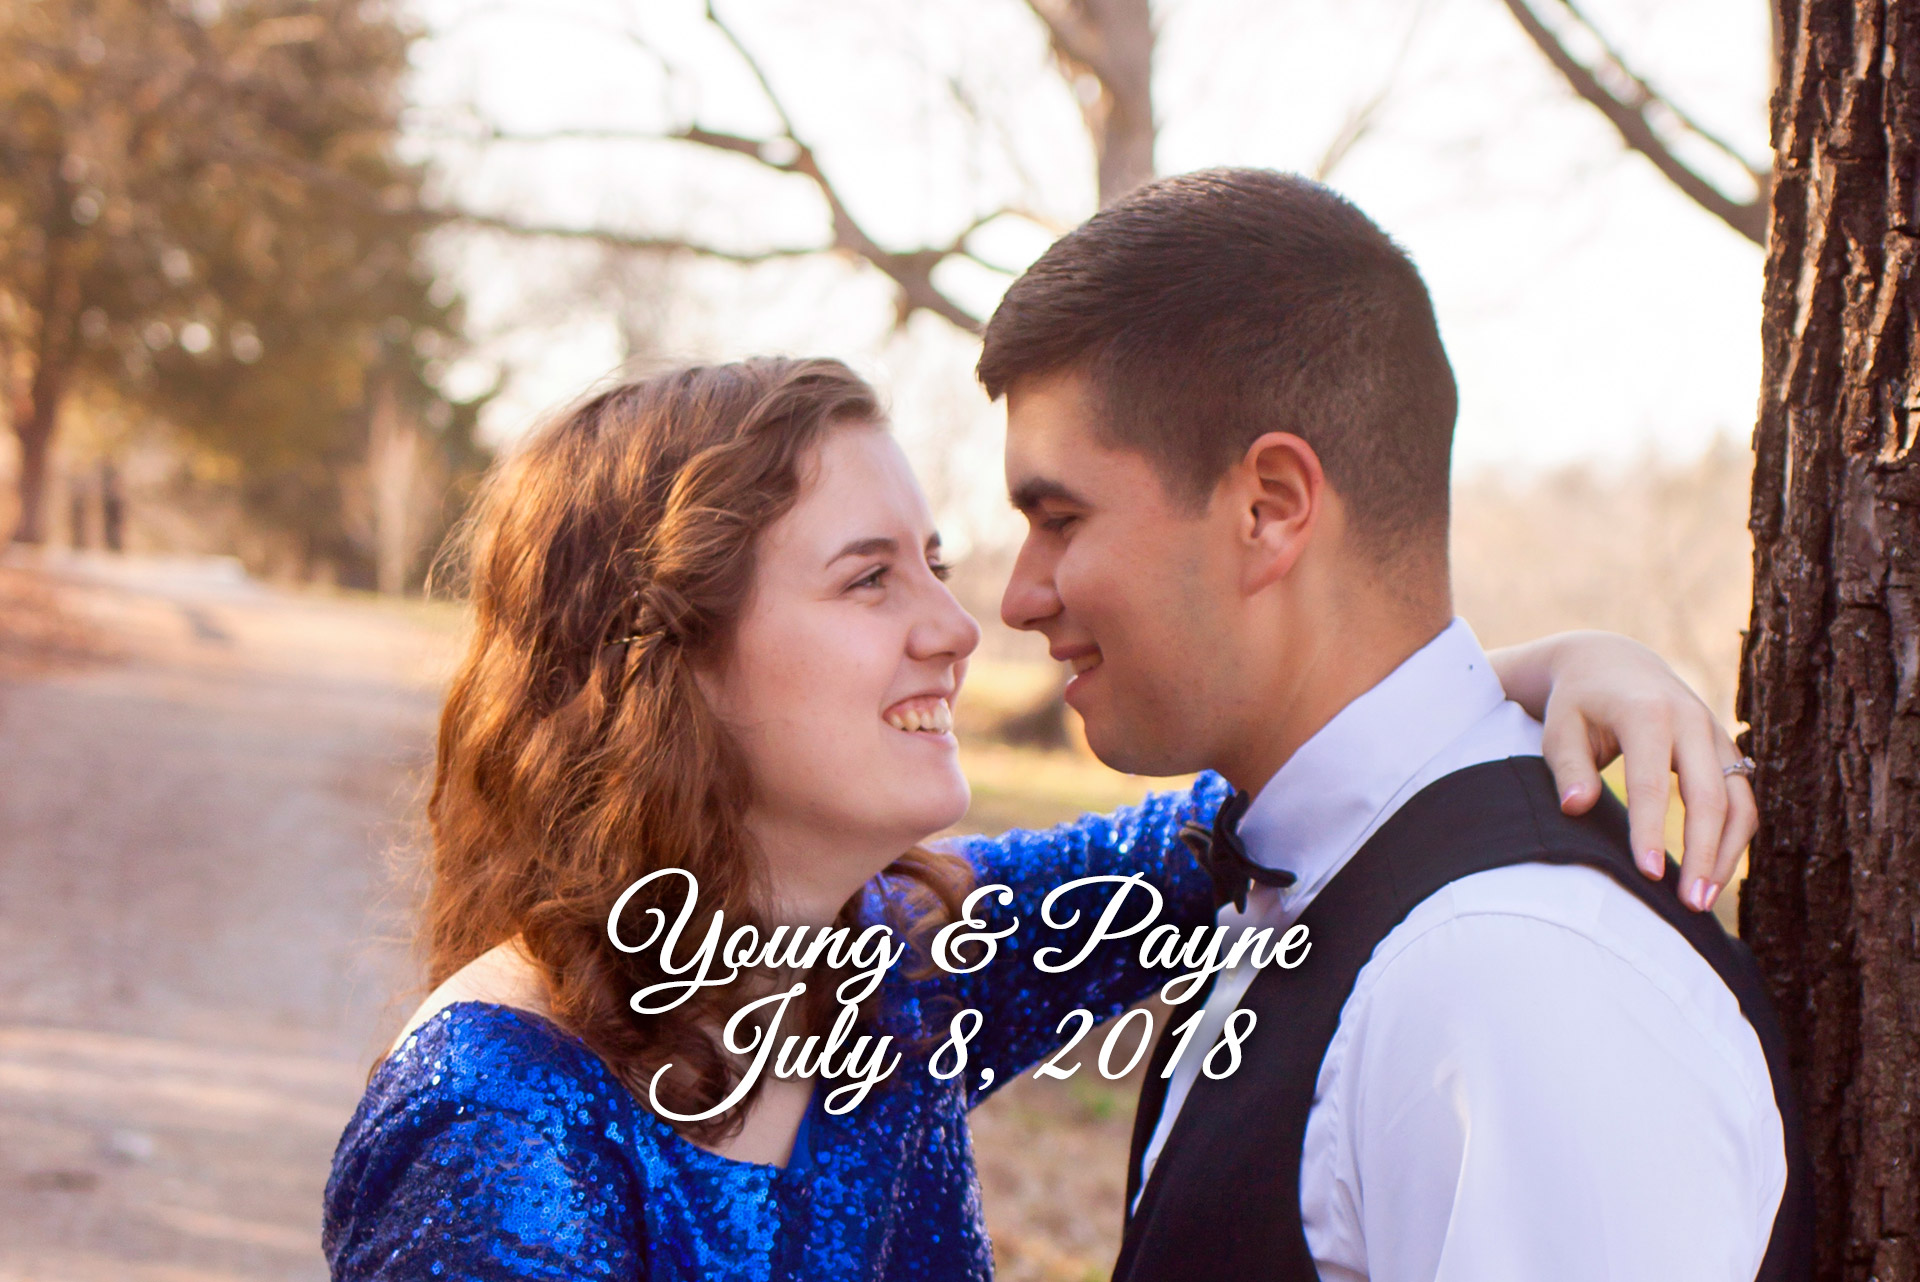 Young-Payne Remnant Fellowship Wedding